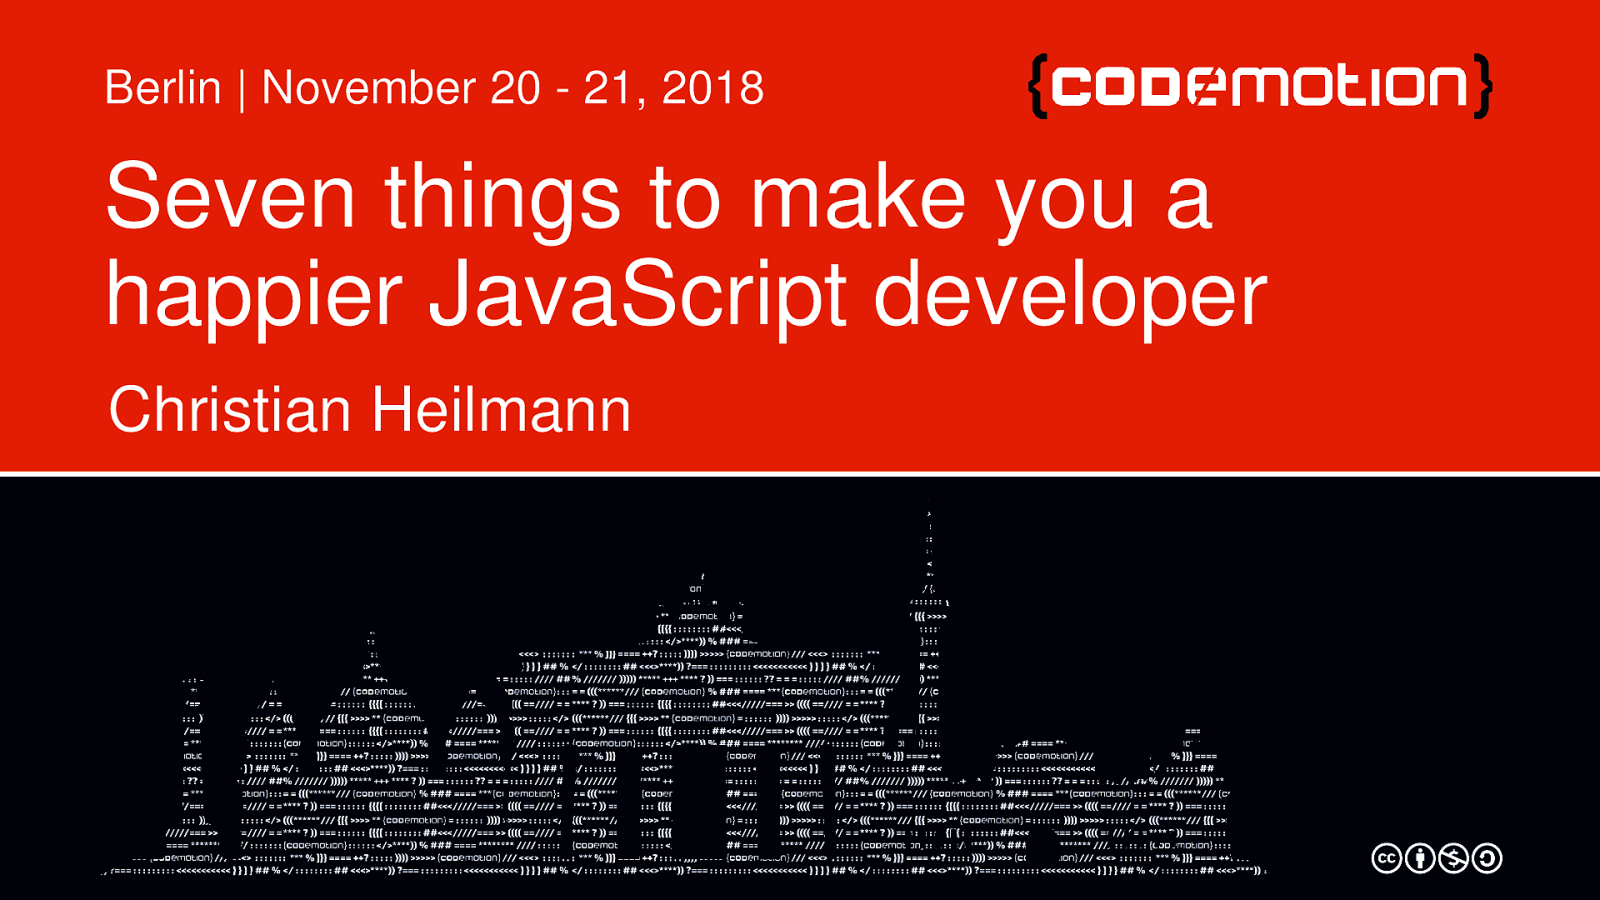 Seven Things to make you a happier JavaScript developer